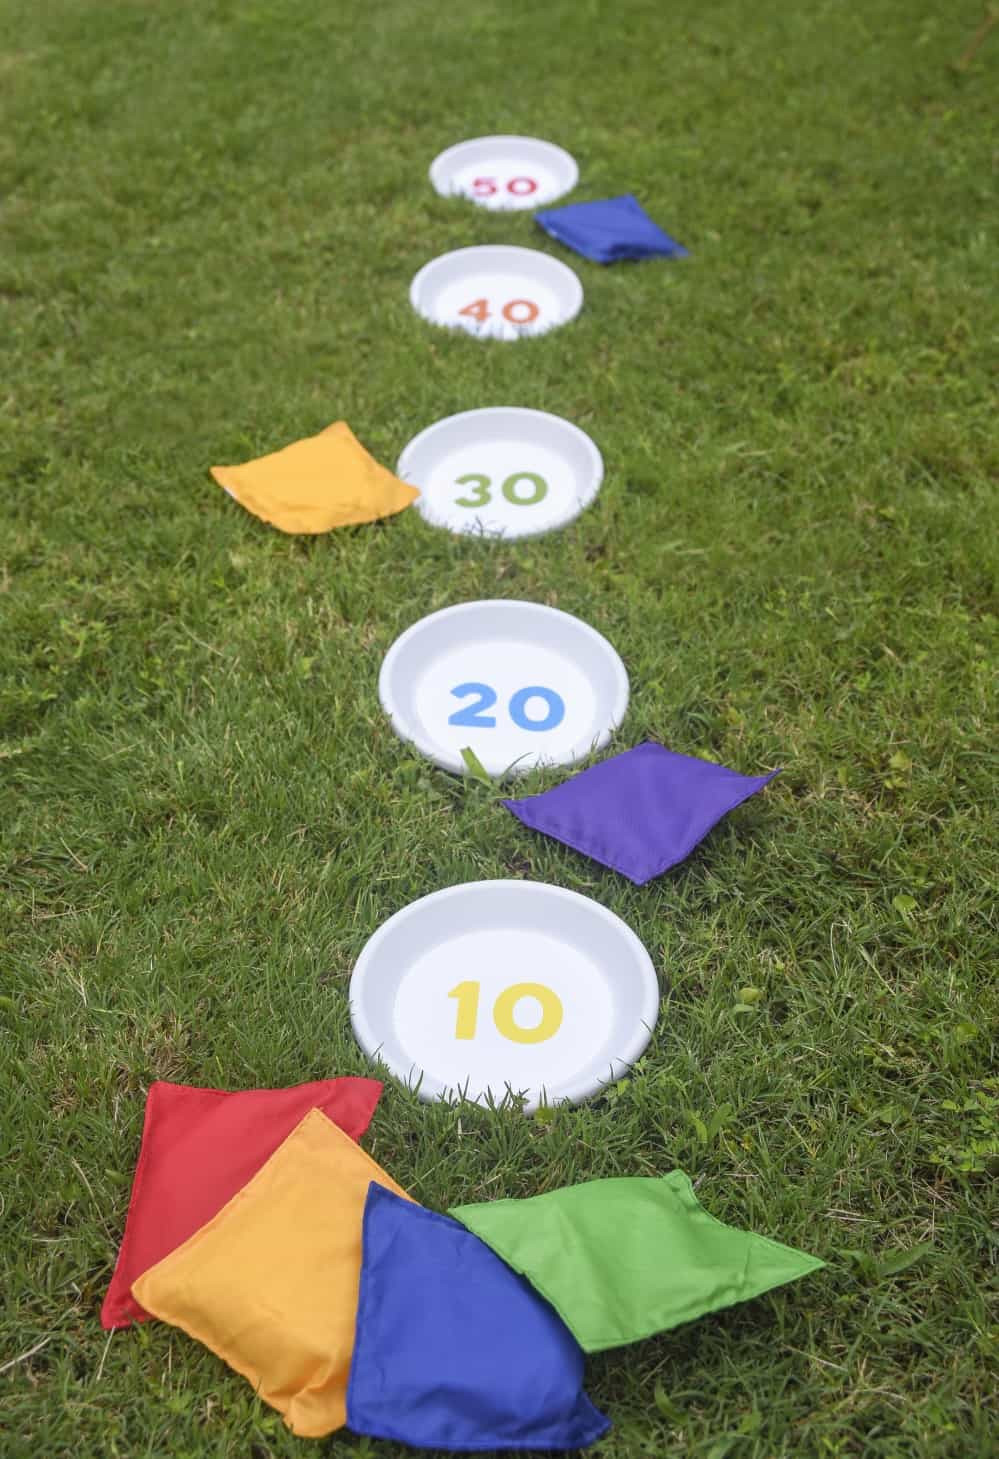 Best ideas about DIY Outdoor Games For Kids . Save or Pin Outdoor Games DIY Bean Bag Toss Mod Podge Rocks Now.